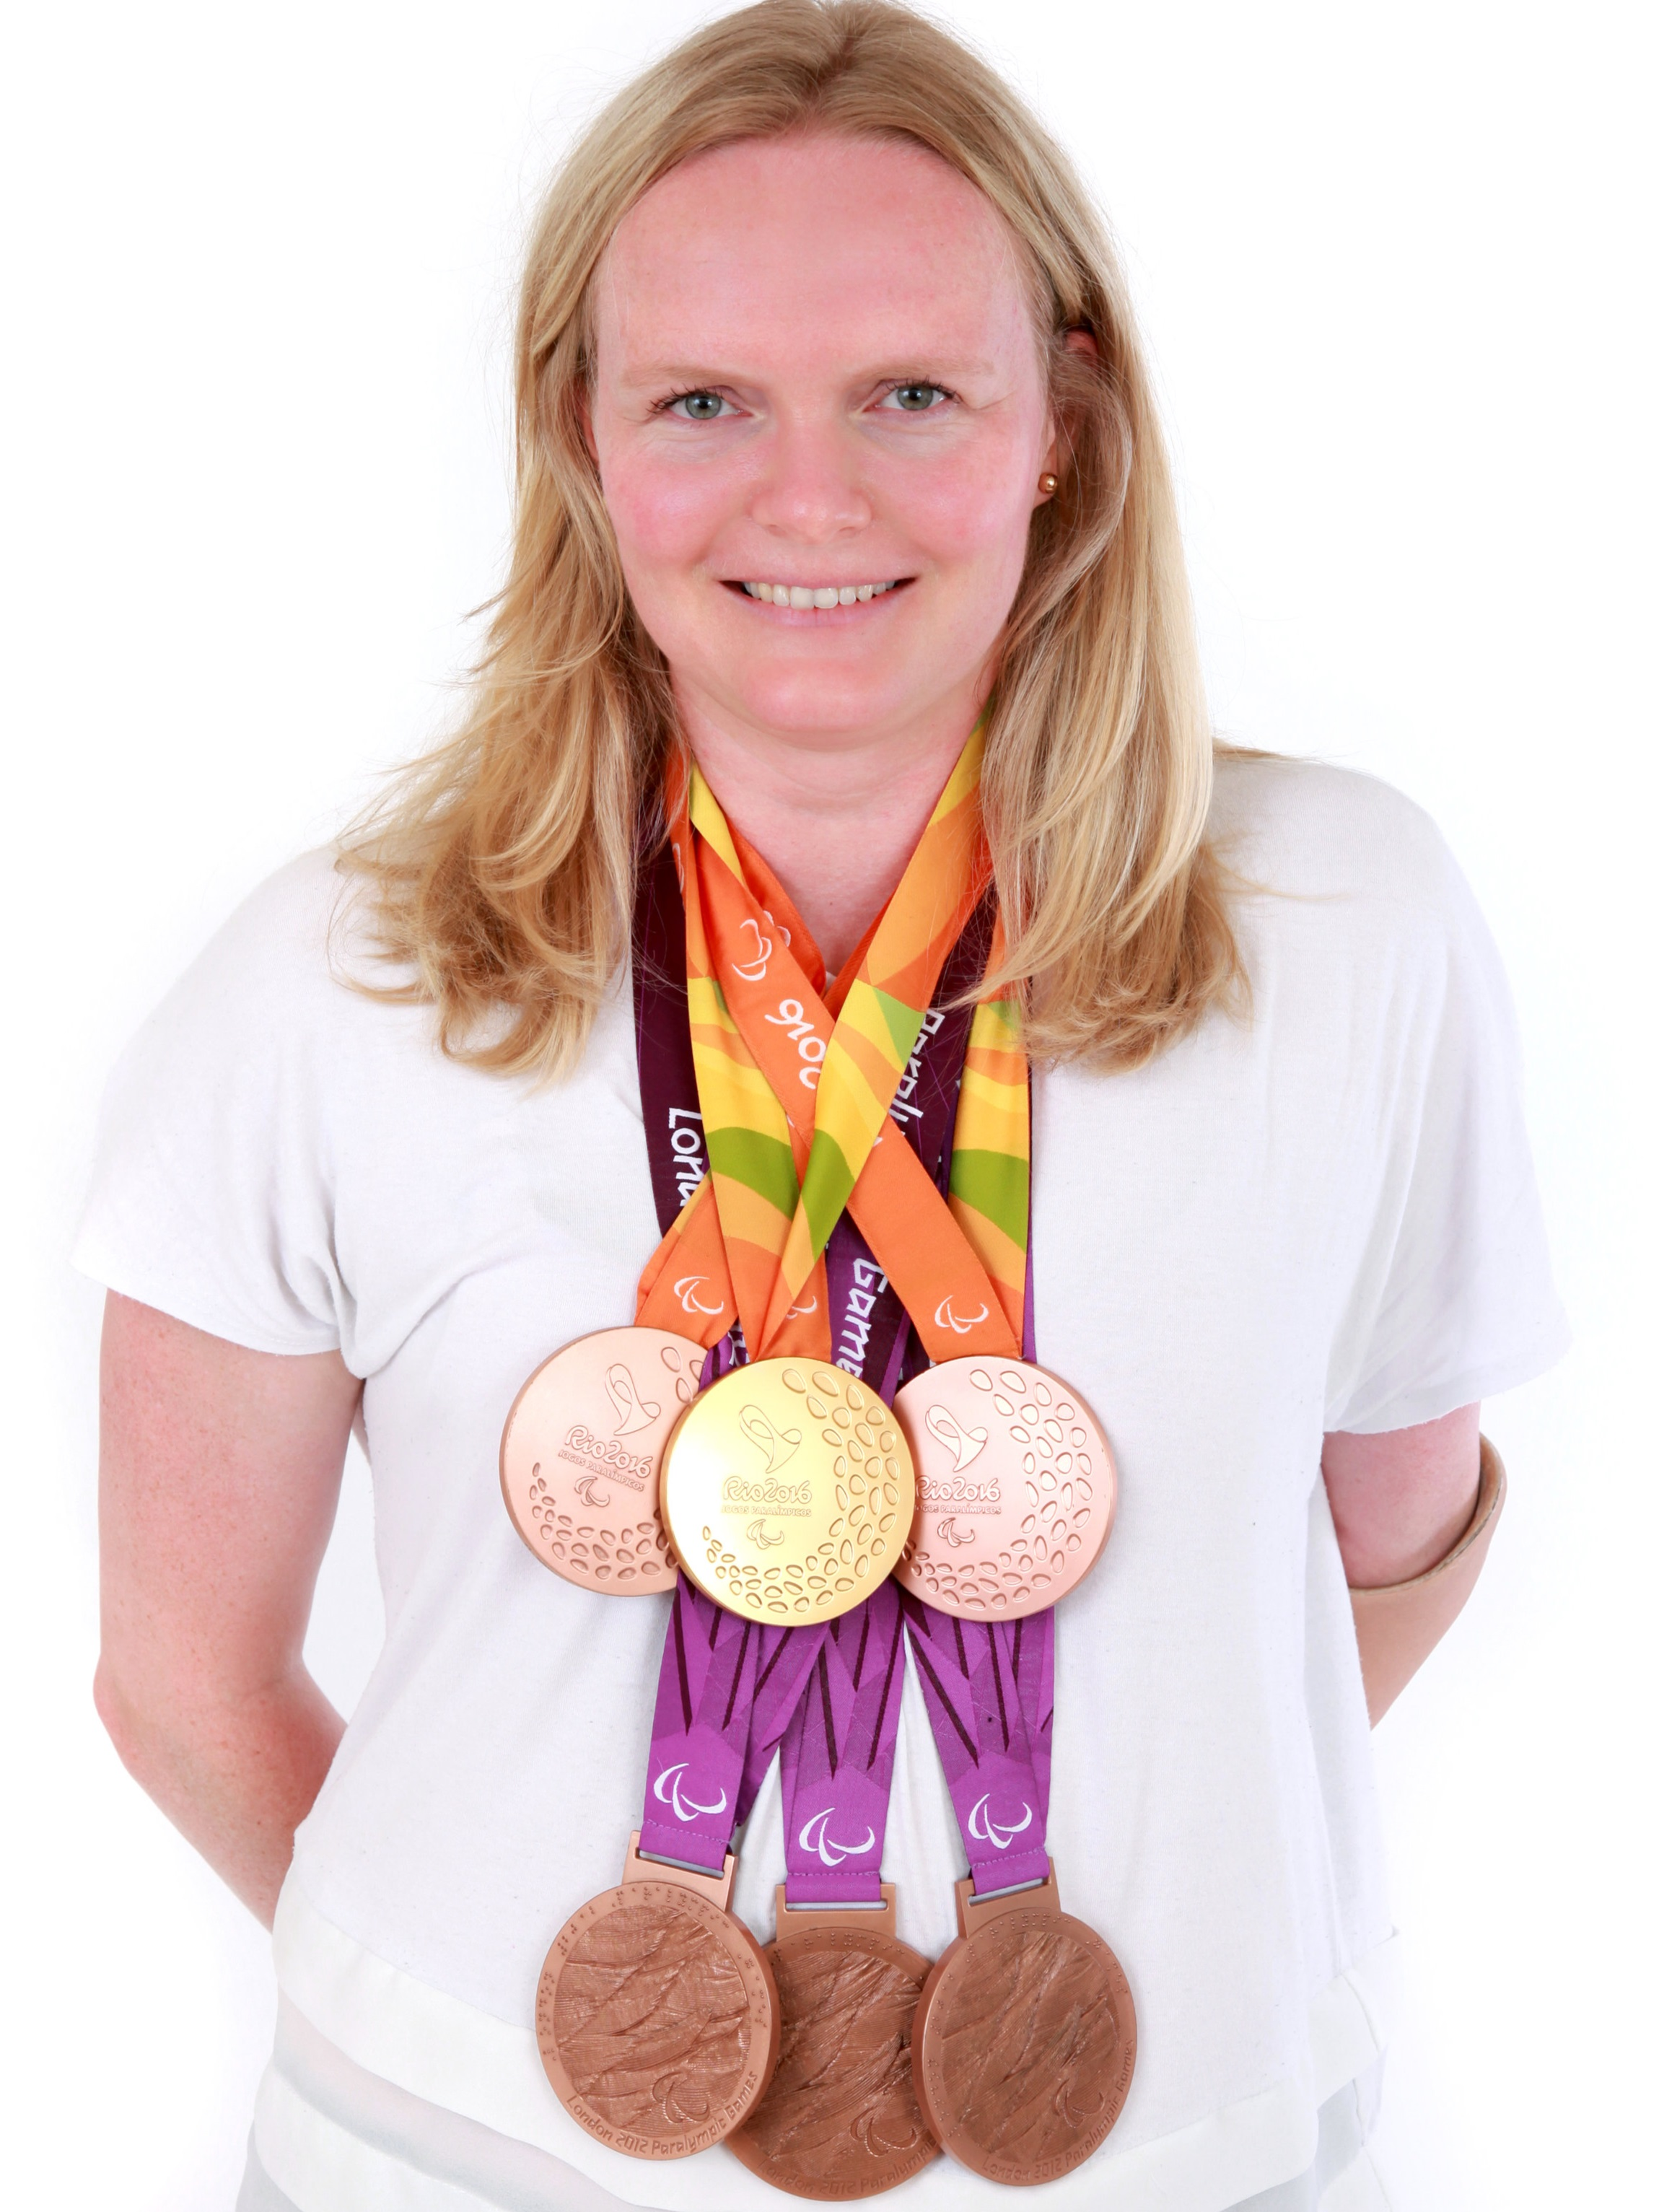 Susie has won 6 Paralympic medals during her former professional sports career as a Paralympic swimmer